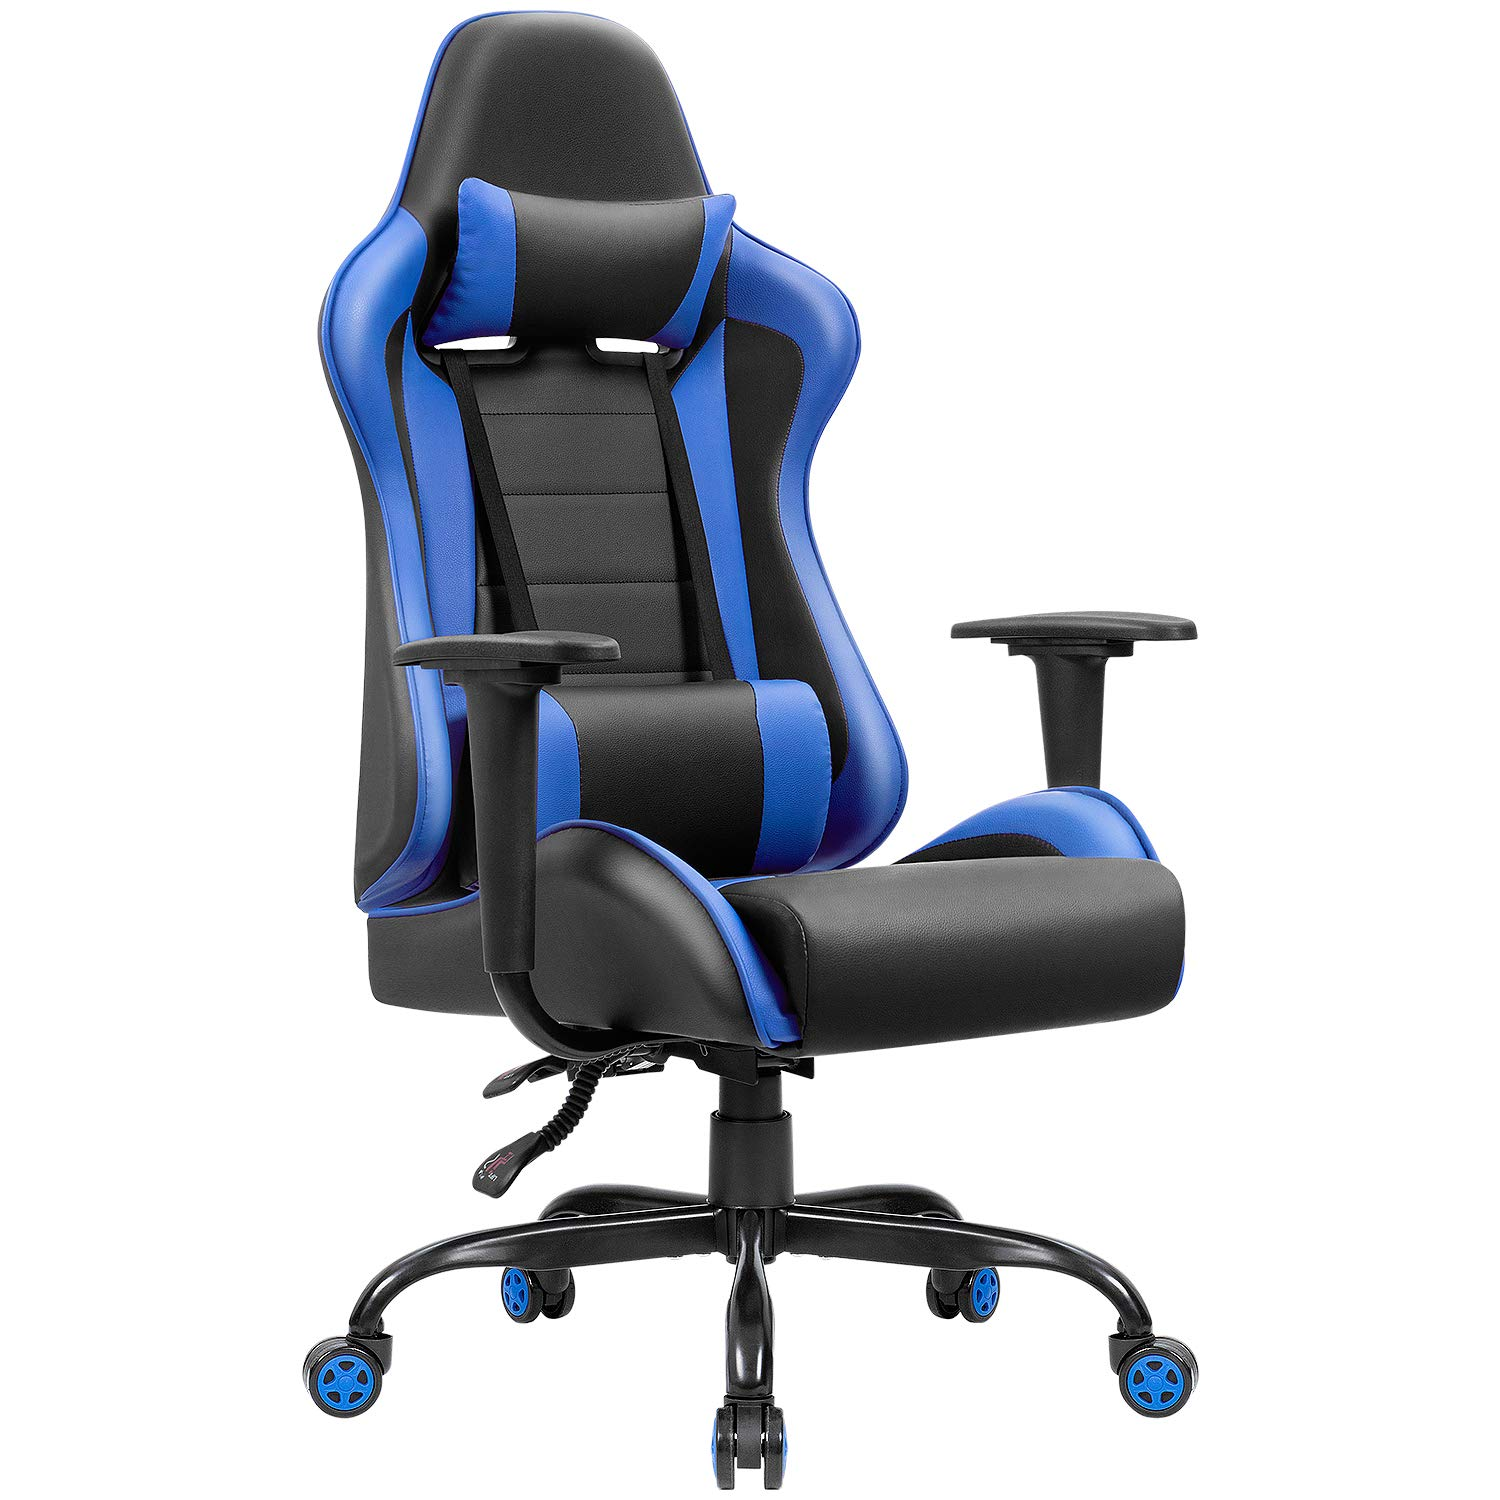 JUMMICO Gaming Chair High-Back PU Leather Racing Chair Ergonomic Computer Desk Executive Home Office Chair with Headrest and Lumbar Support (Blue) by JUMMICO